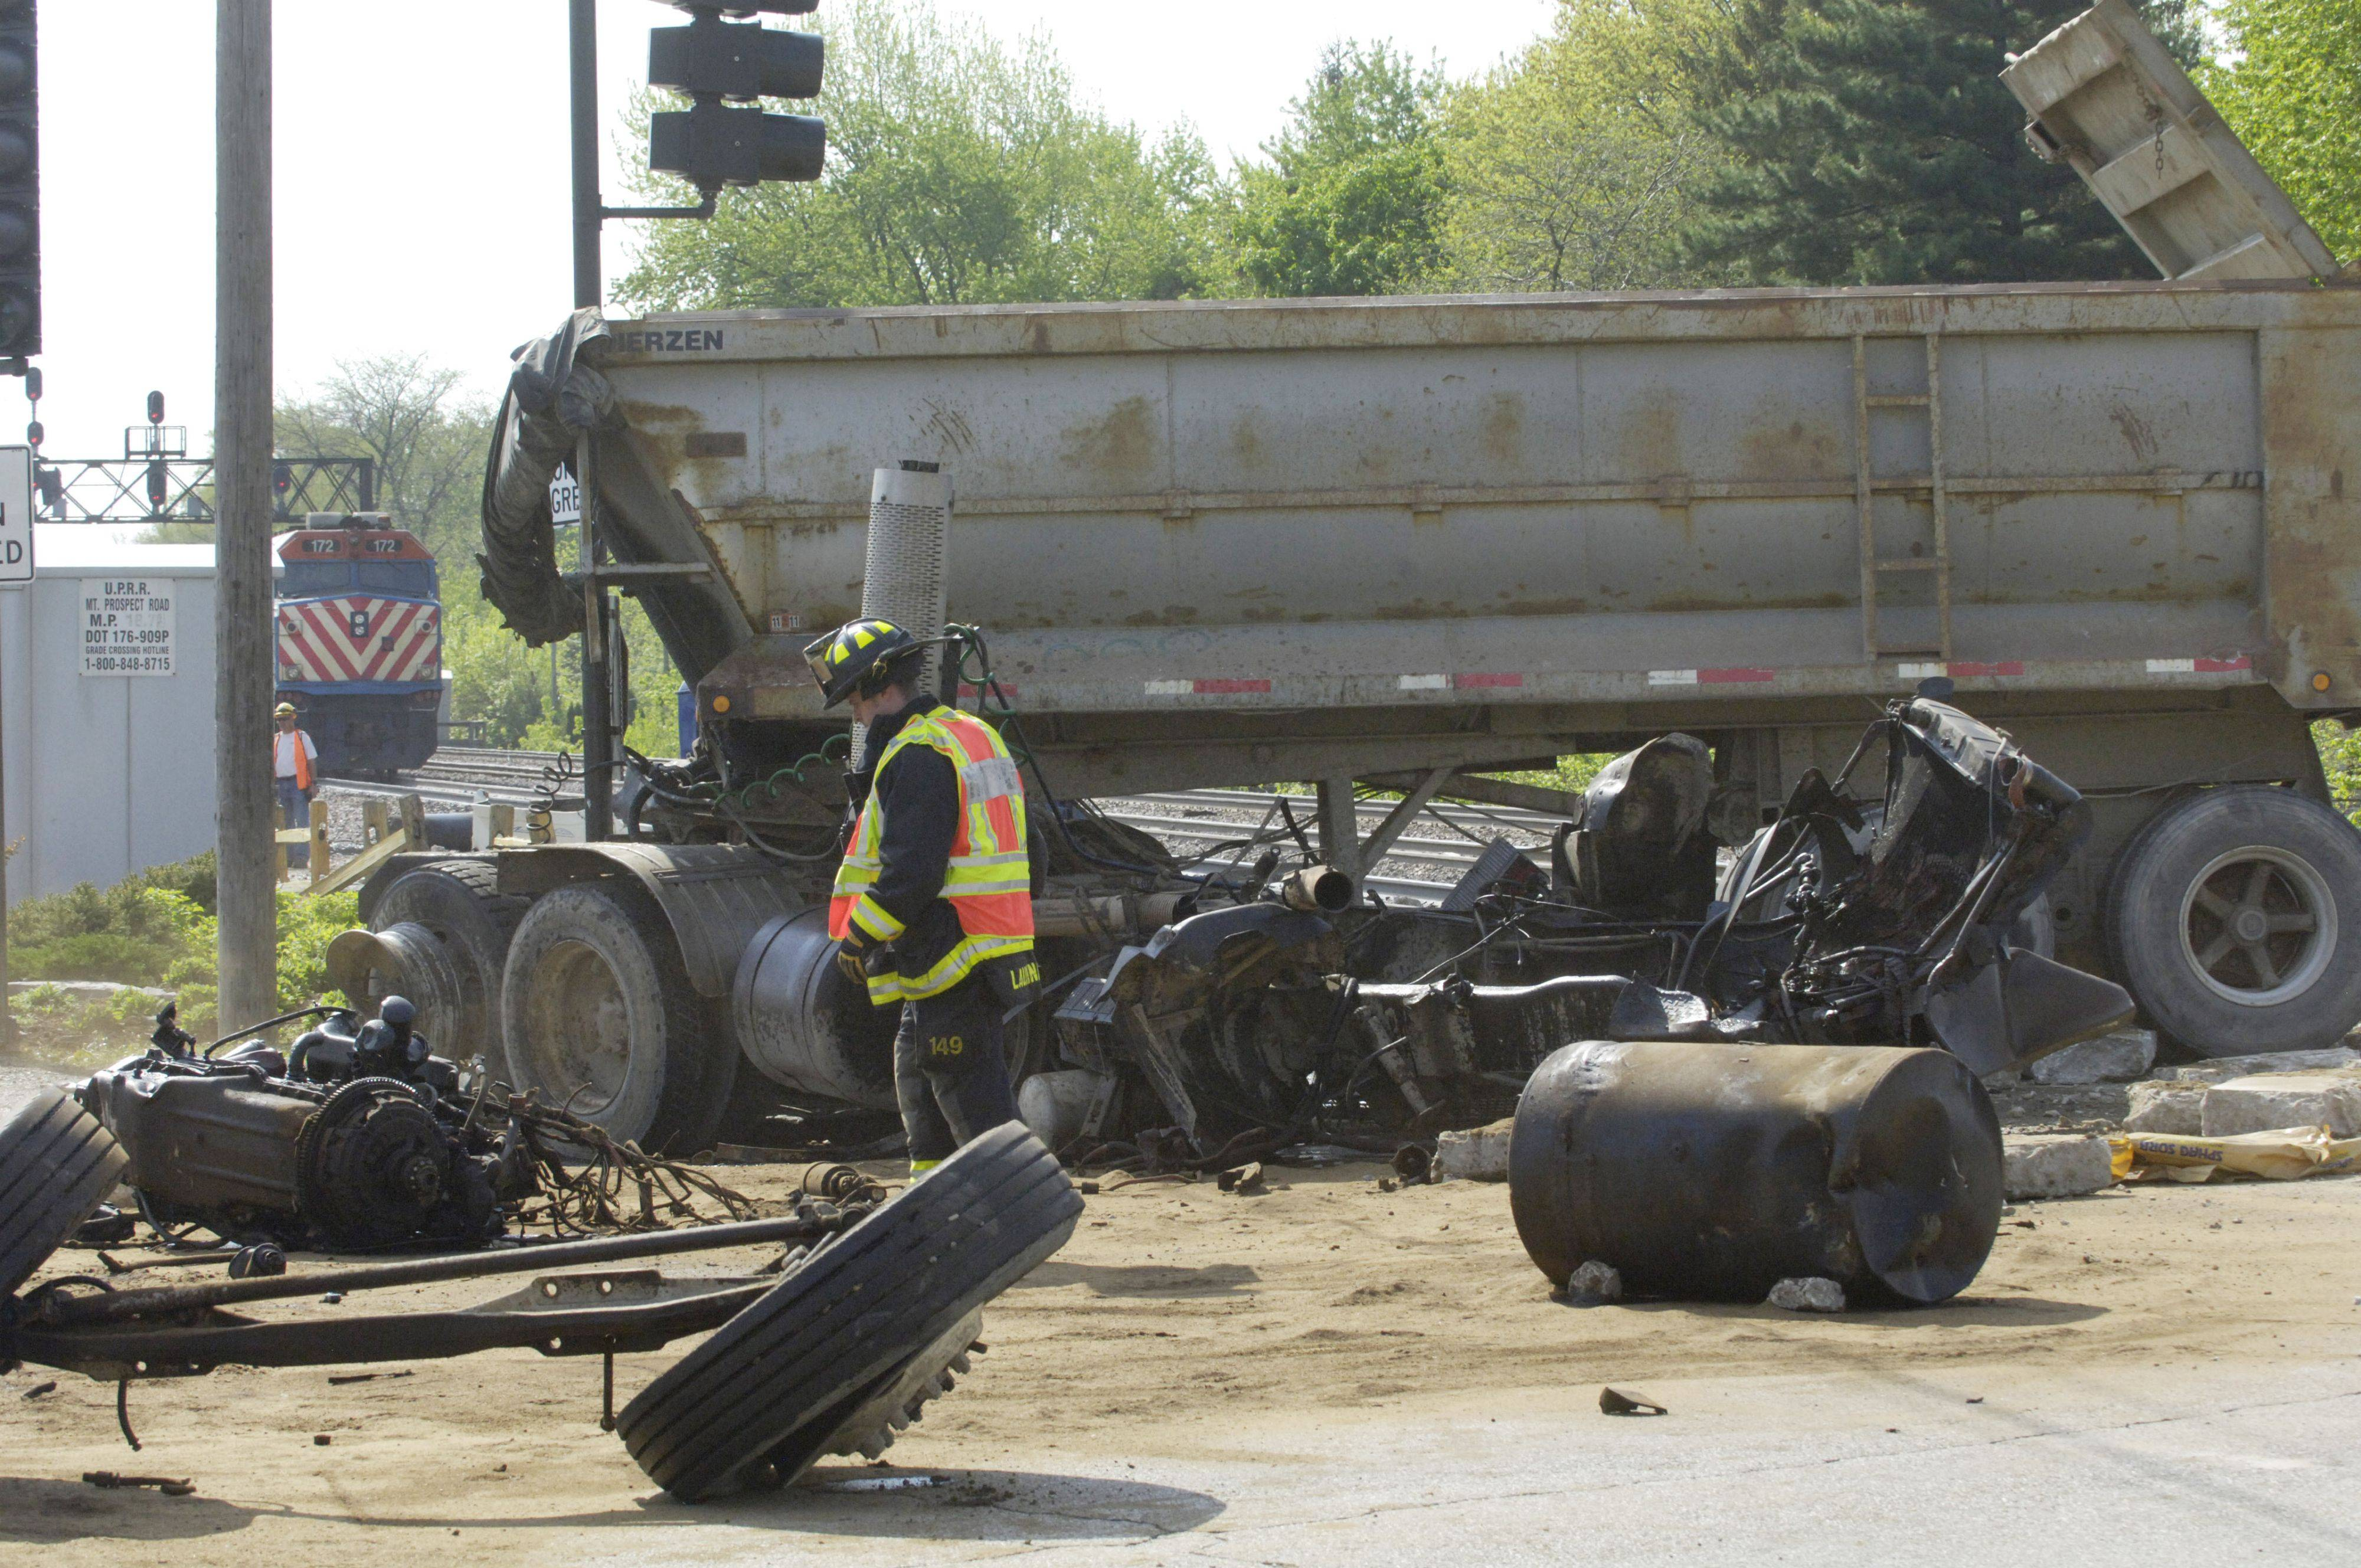 Images: Metra train collision in Mount Prospect